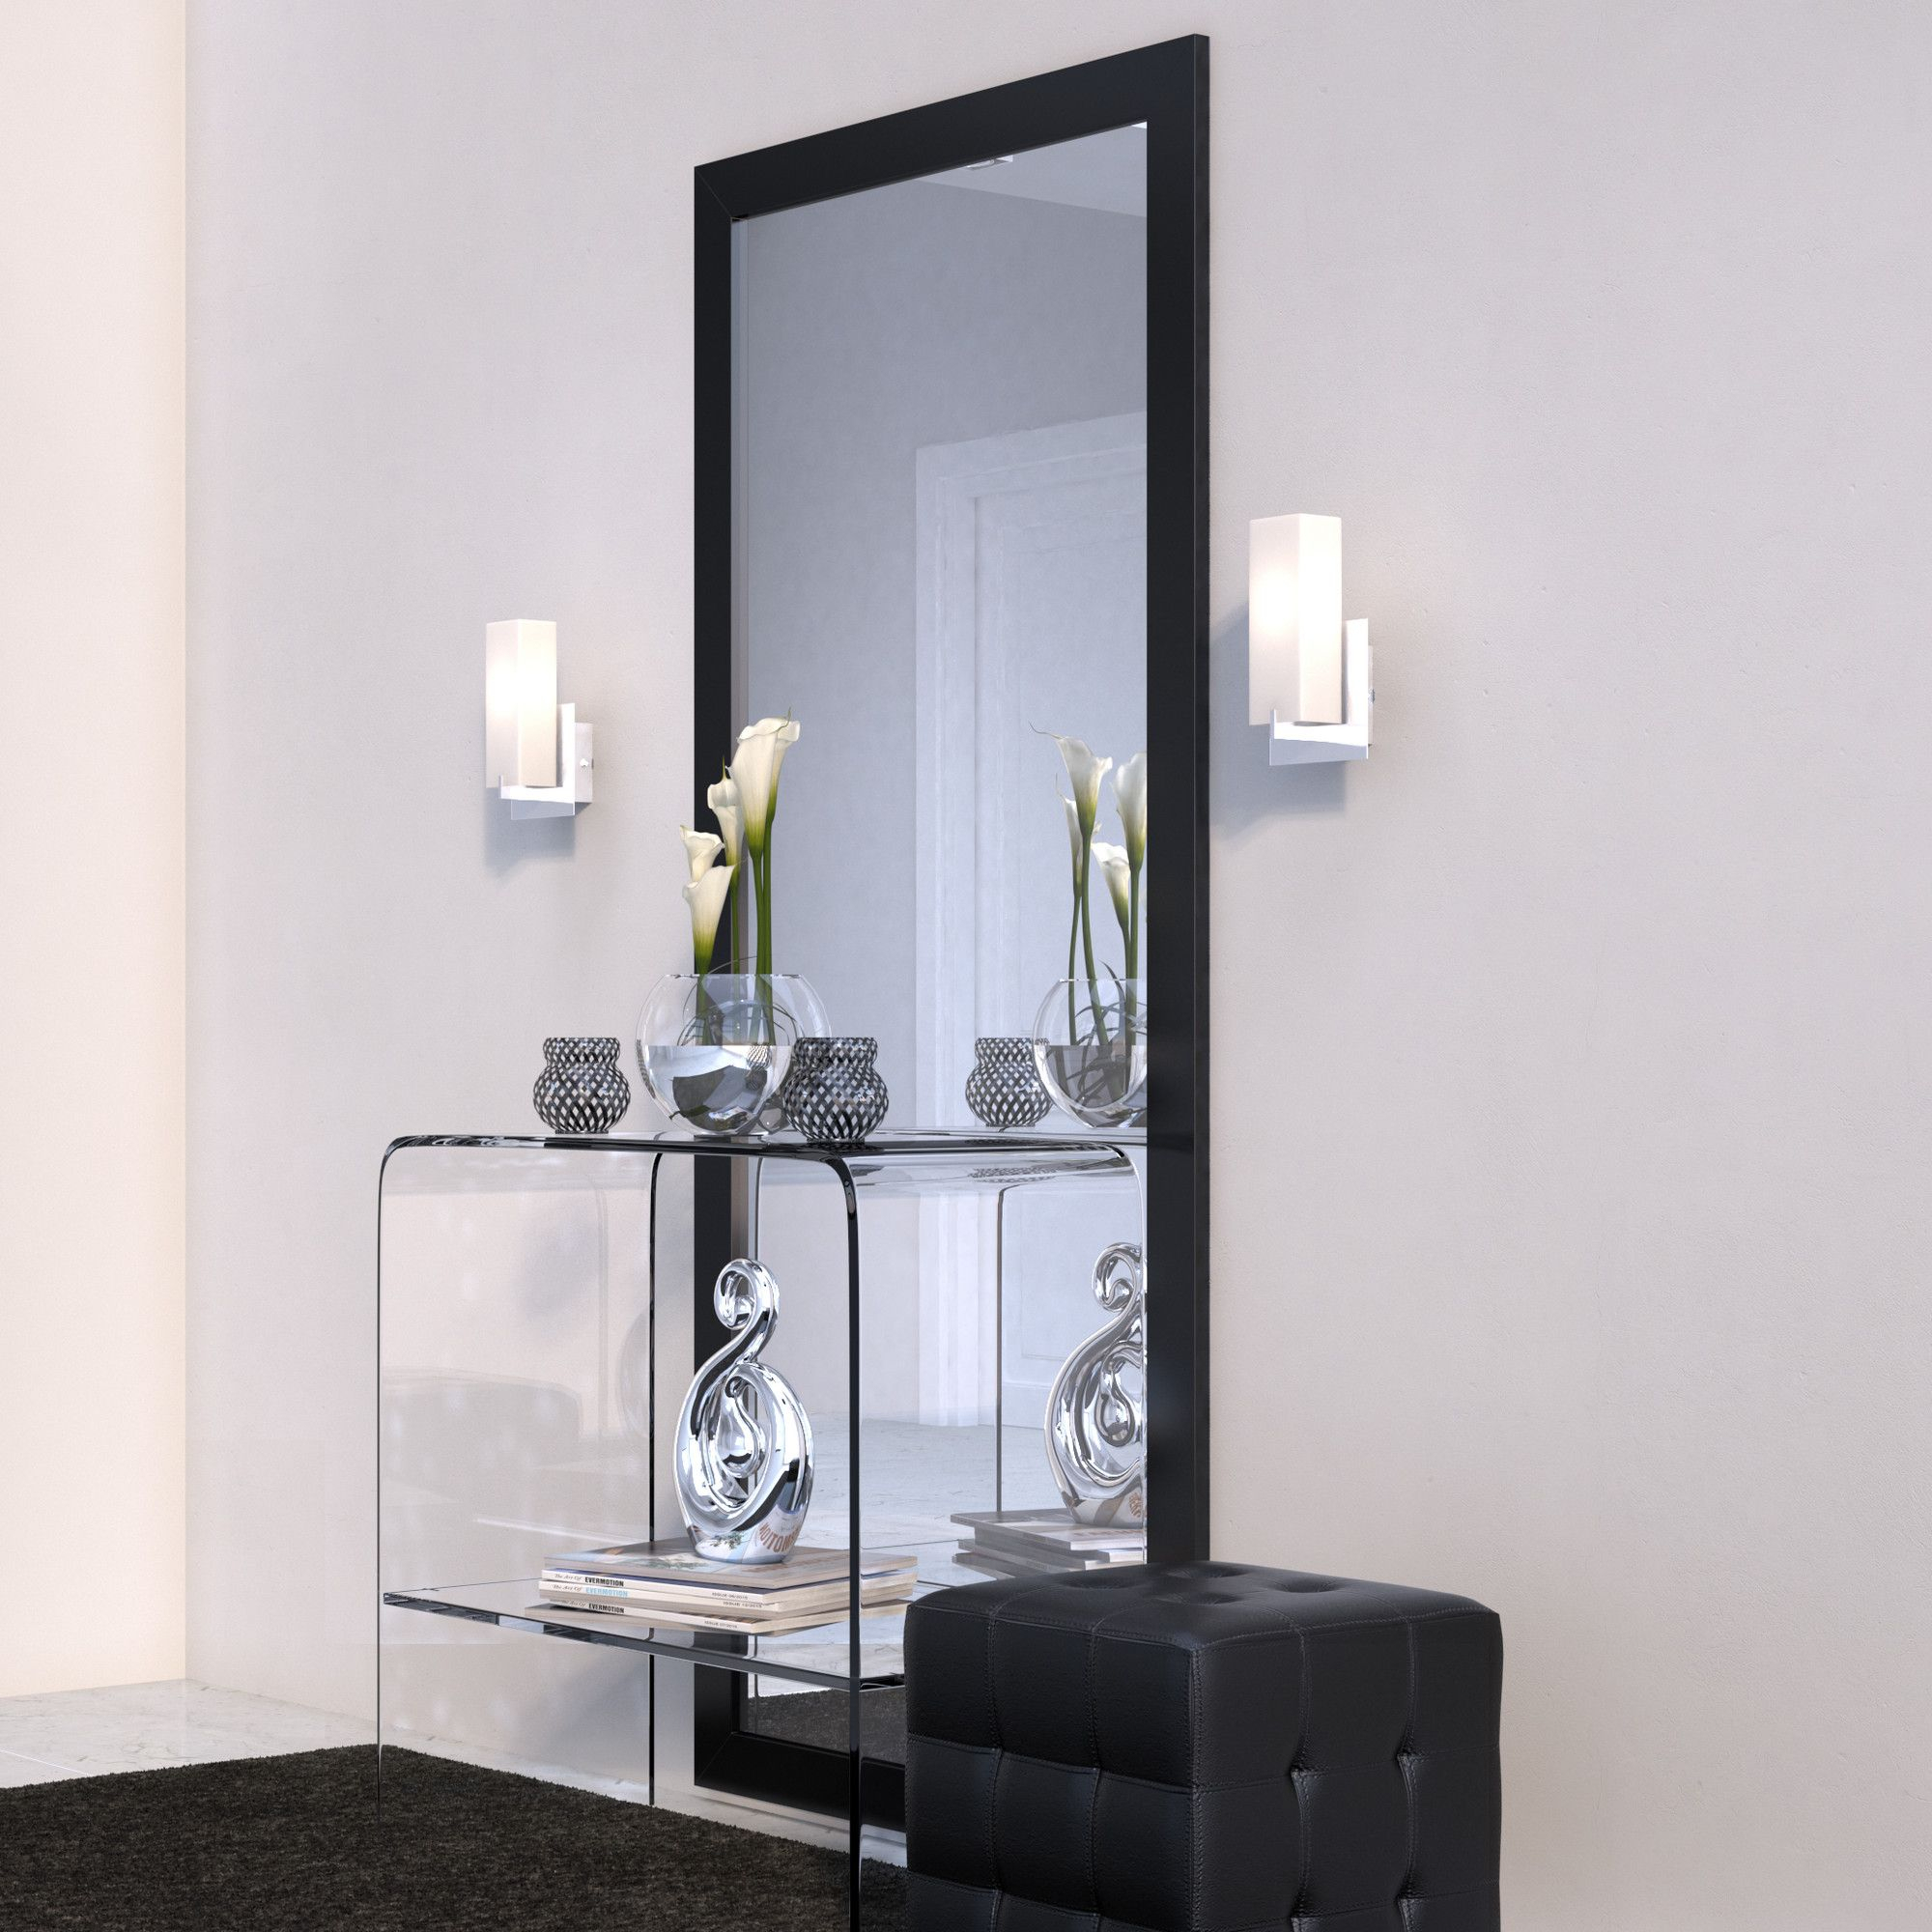 Jameson Modern & Contemporary Full Length Mirror | Products inside Jameson Modern & Contemporary Full Length Mirrors (Image 16 of 30)